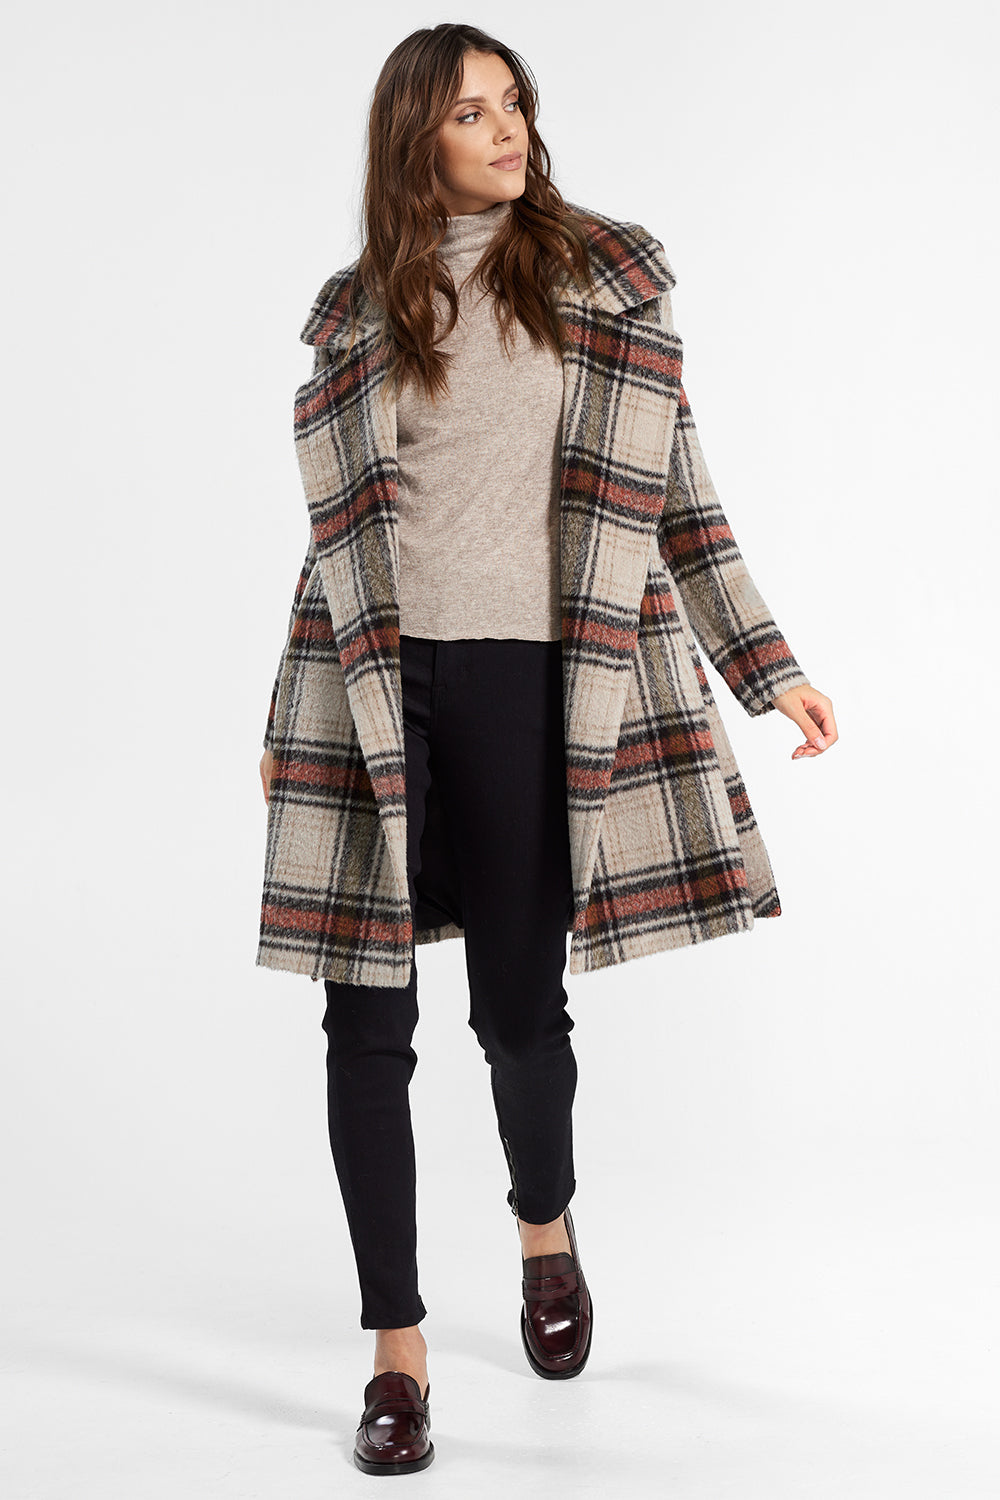 Sentaler Plaid Mid Length Notched Collar Wrap Coat featured in Suri Alpaca and available in Sand Plaid. Seen open